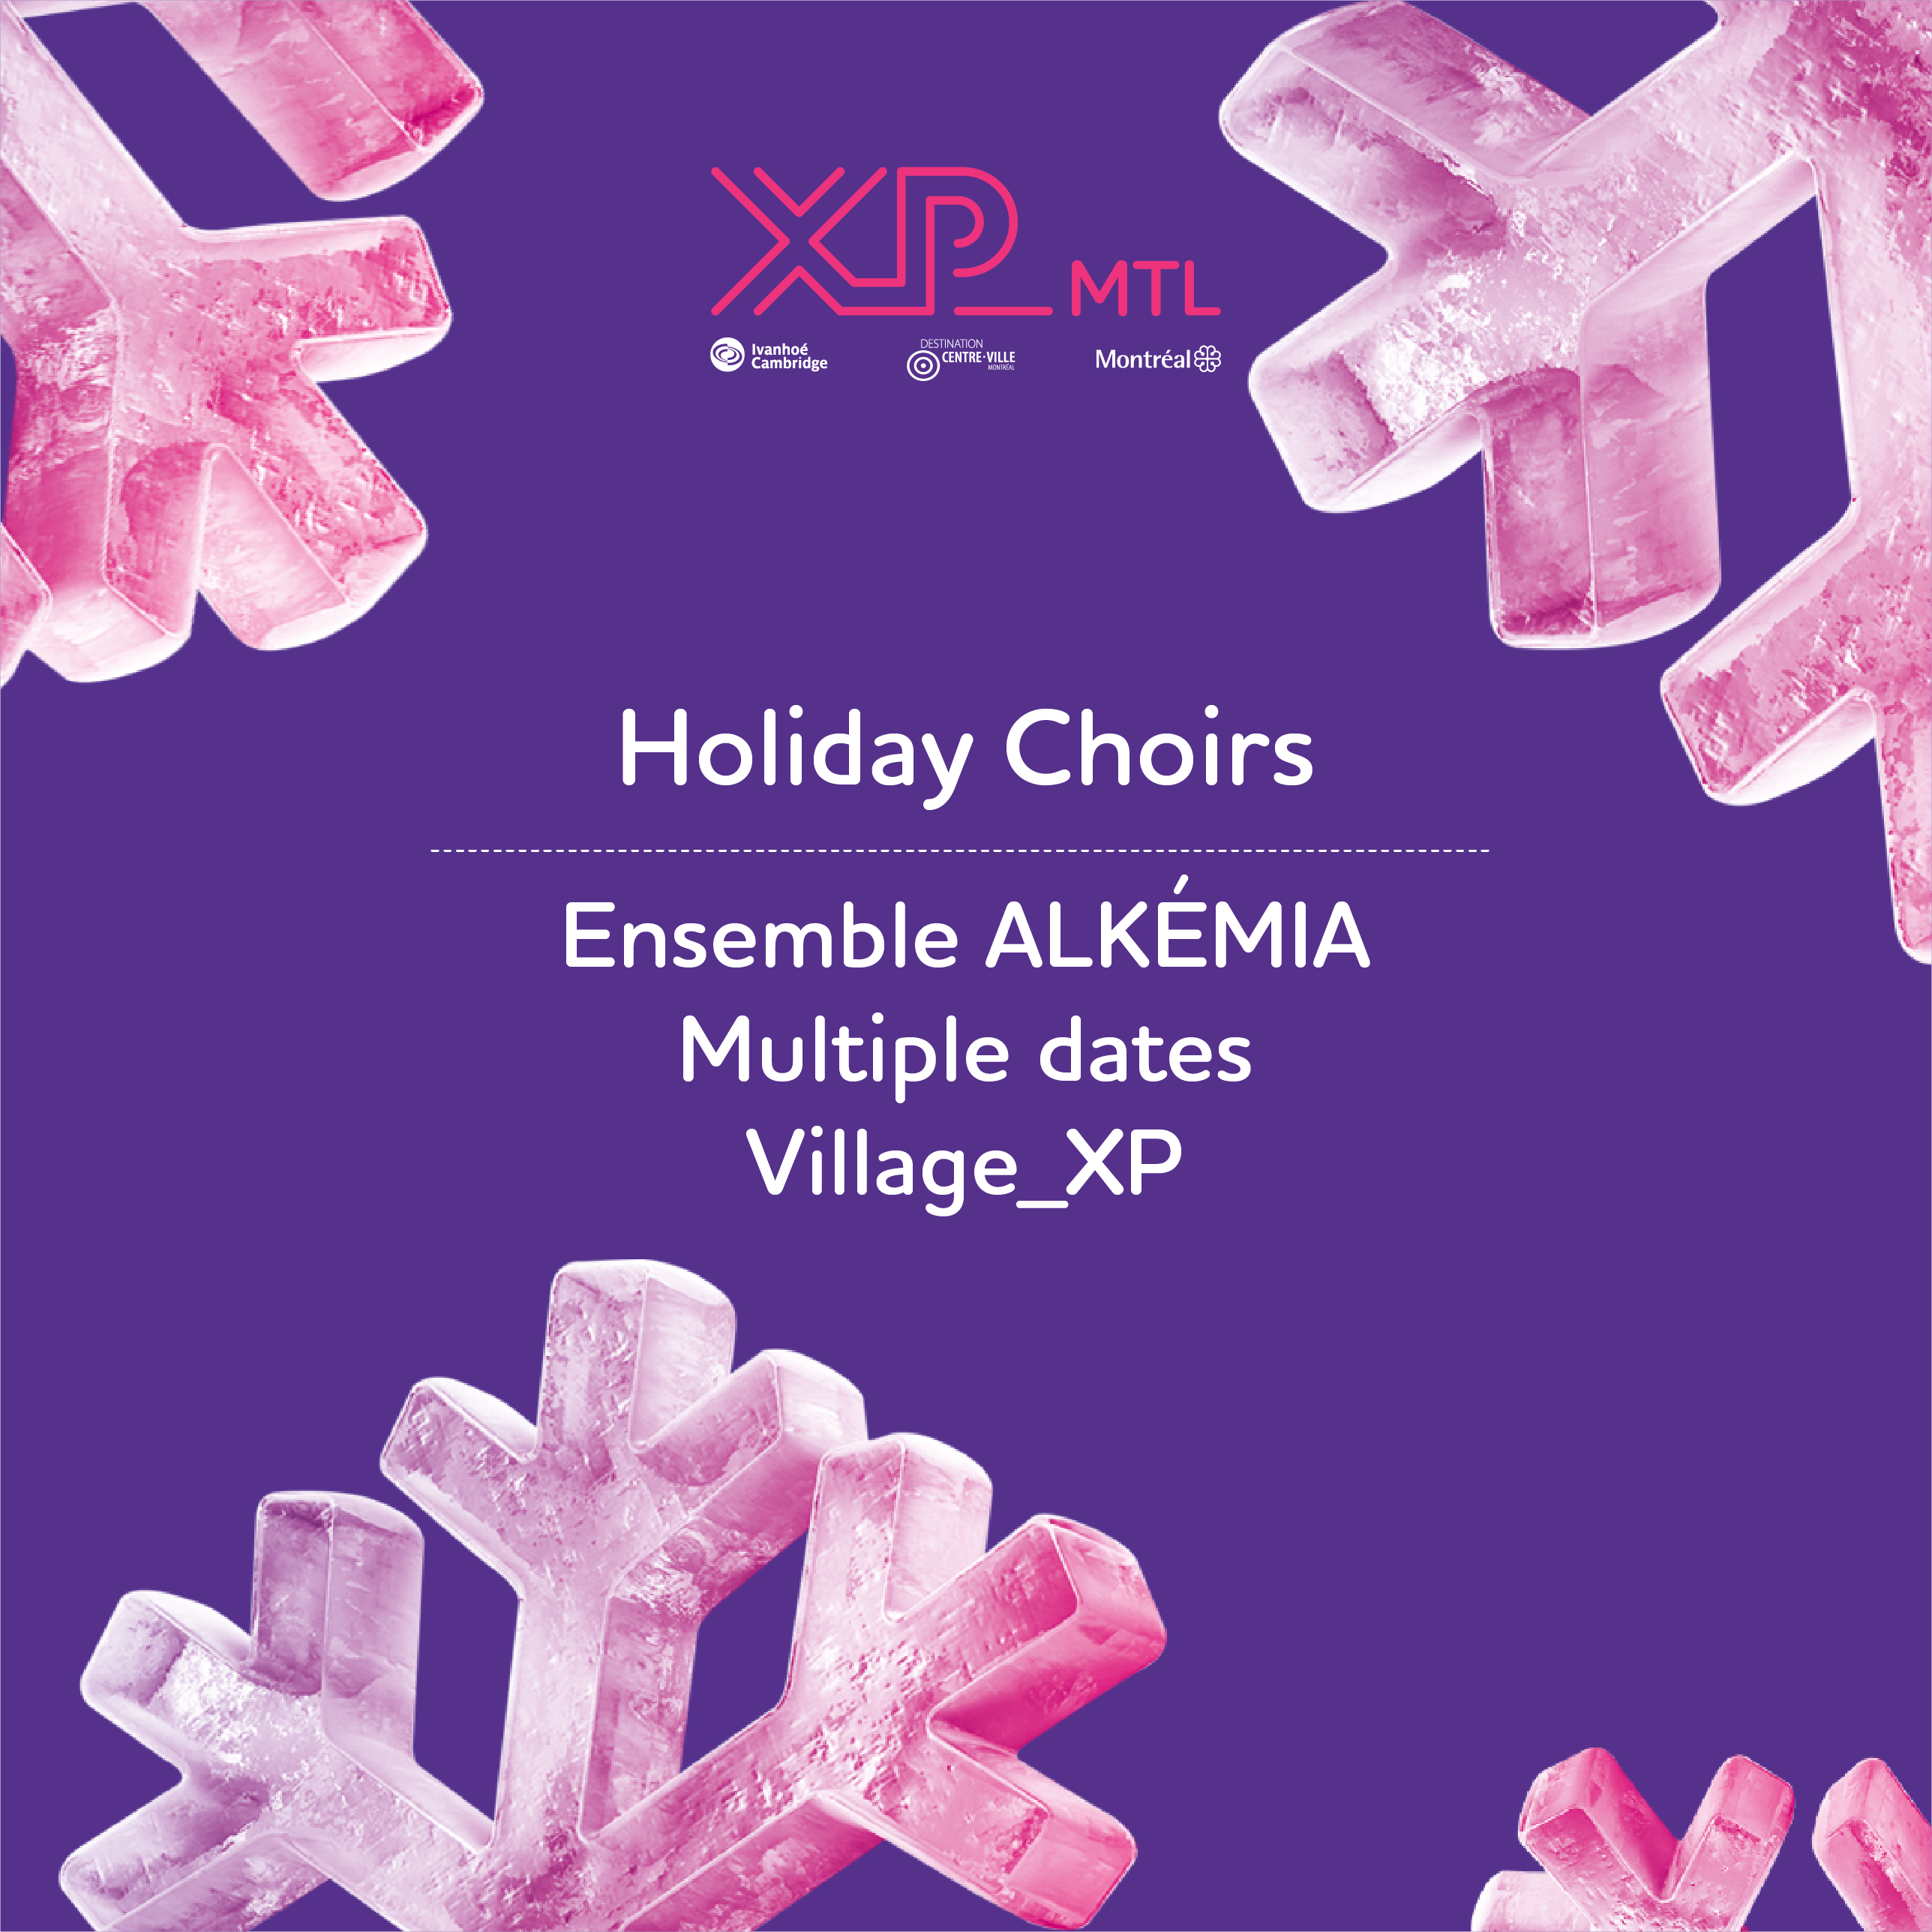 XP_MTL presents Holidays Choirs – Ensemble Alkémia